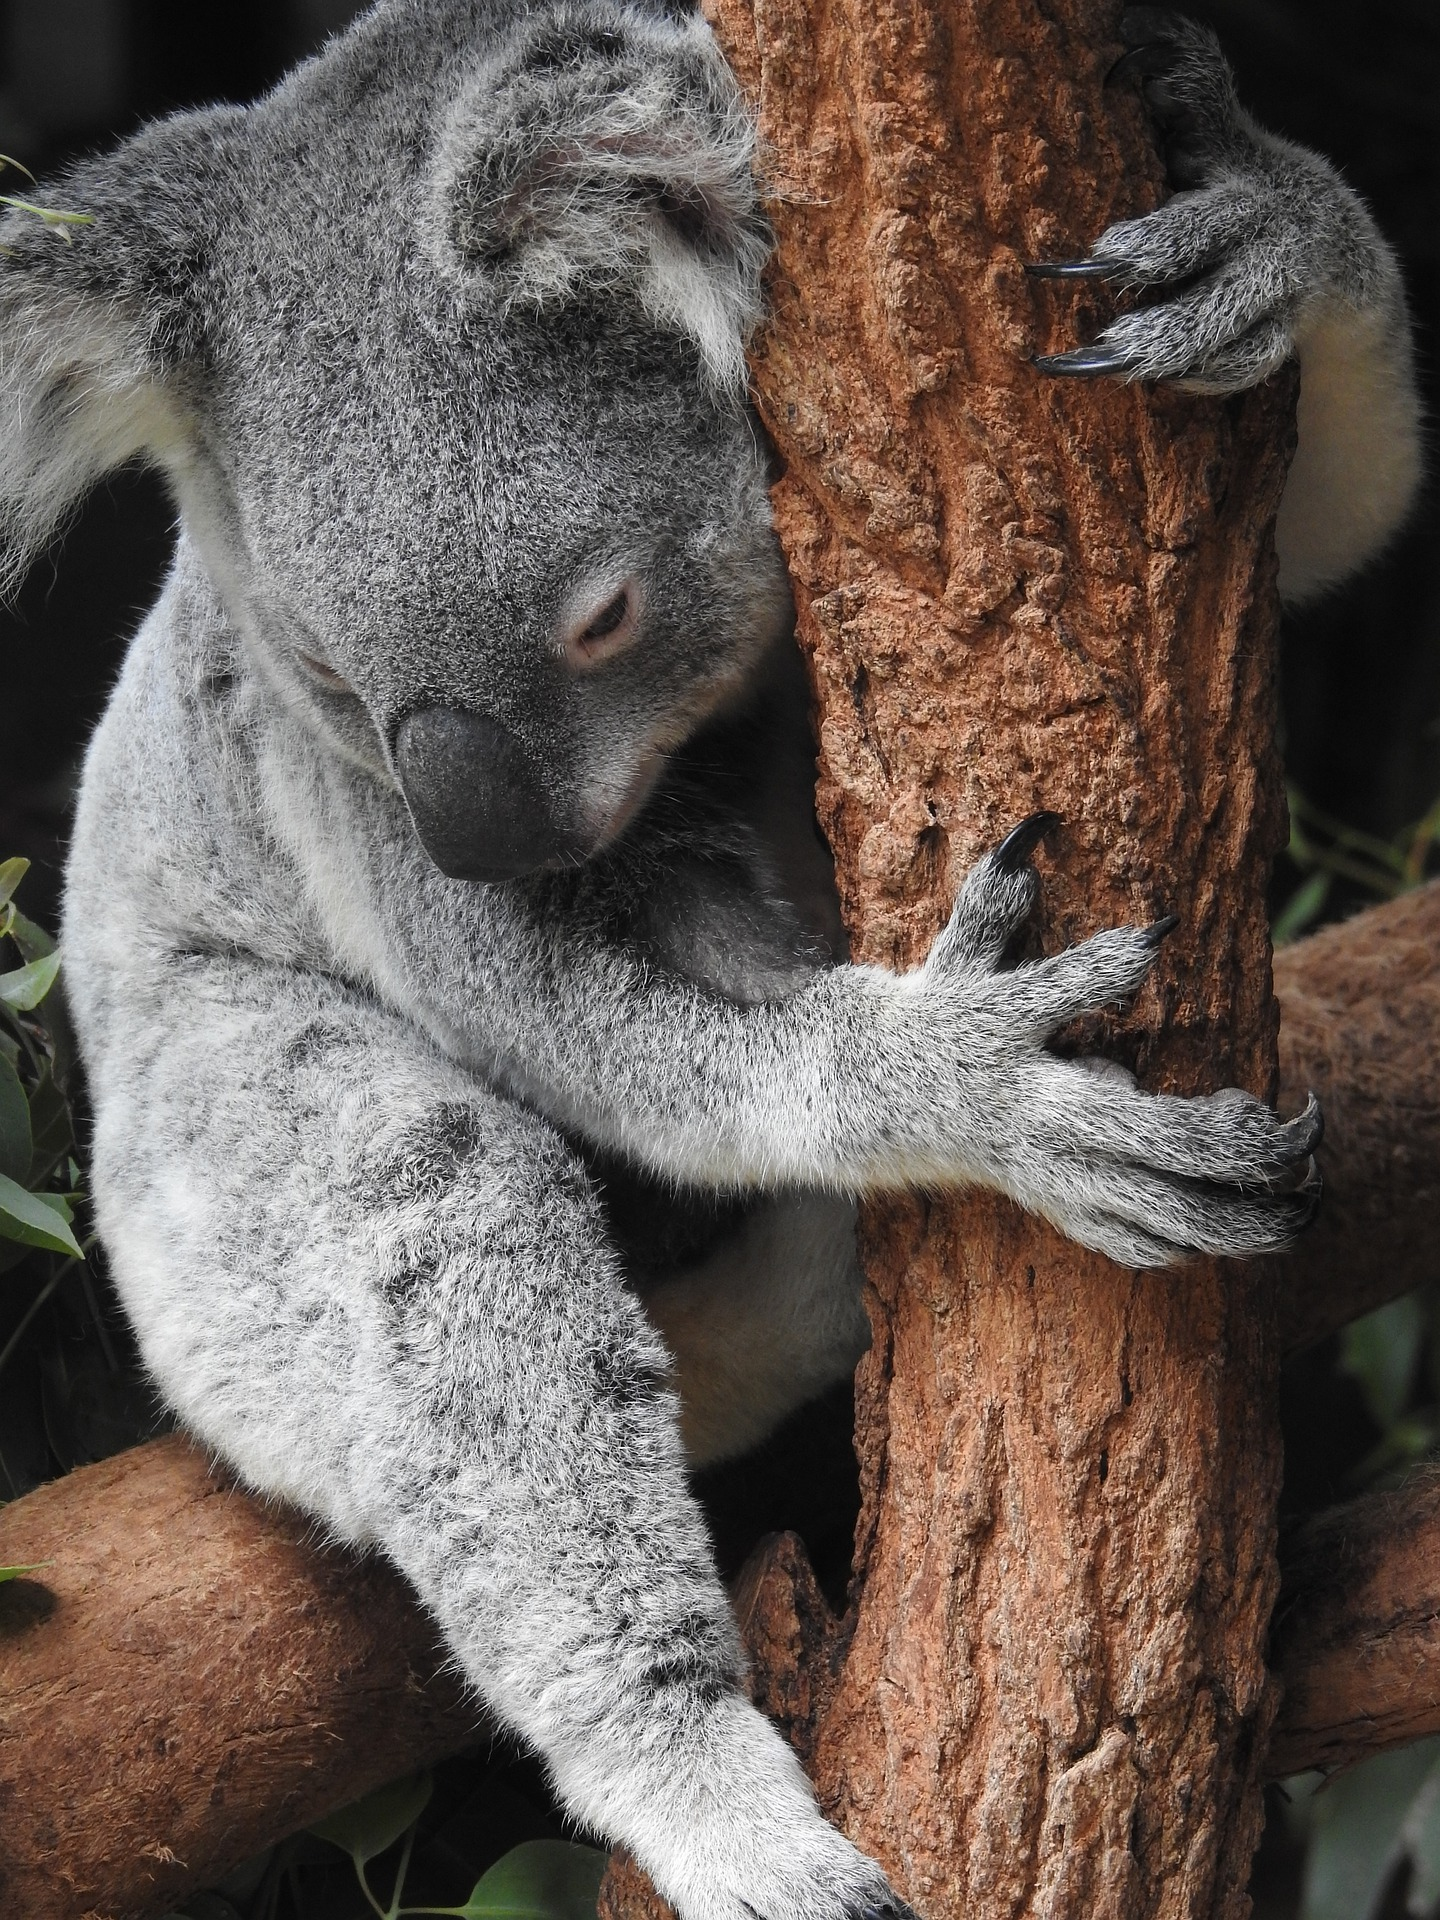 Free download high resolution image - free image free photo free stock image public domain picture -A sleeping koala